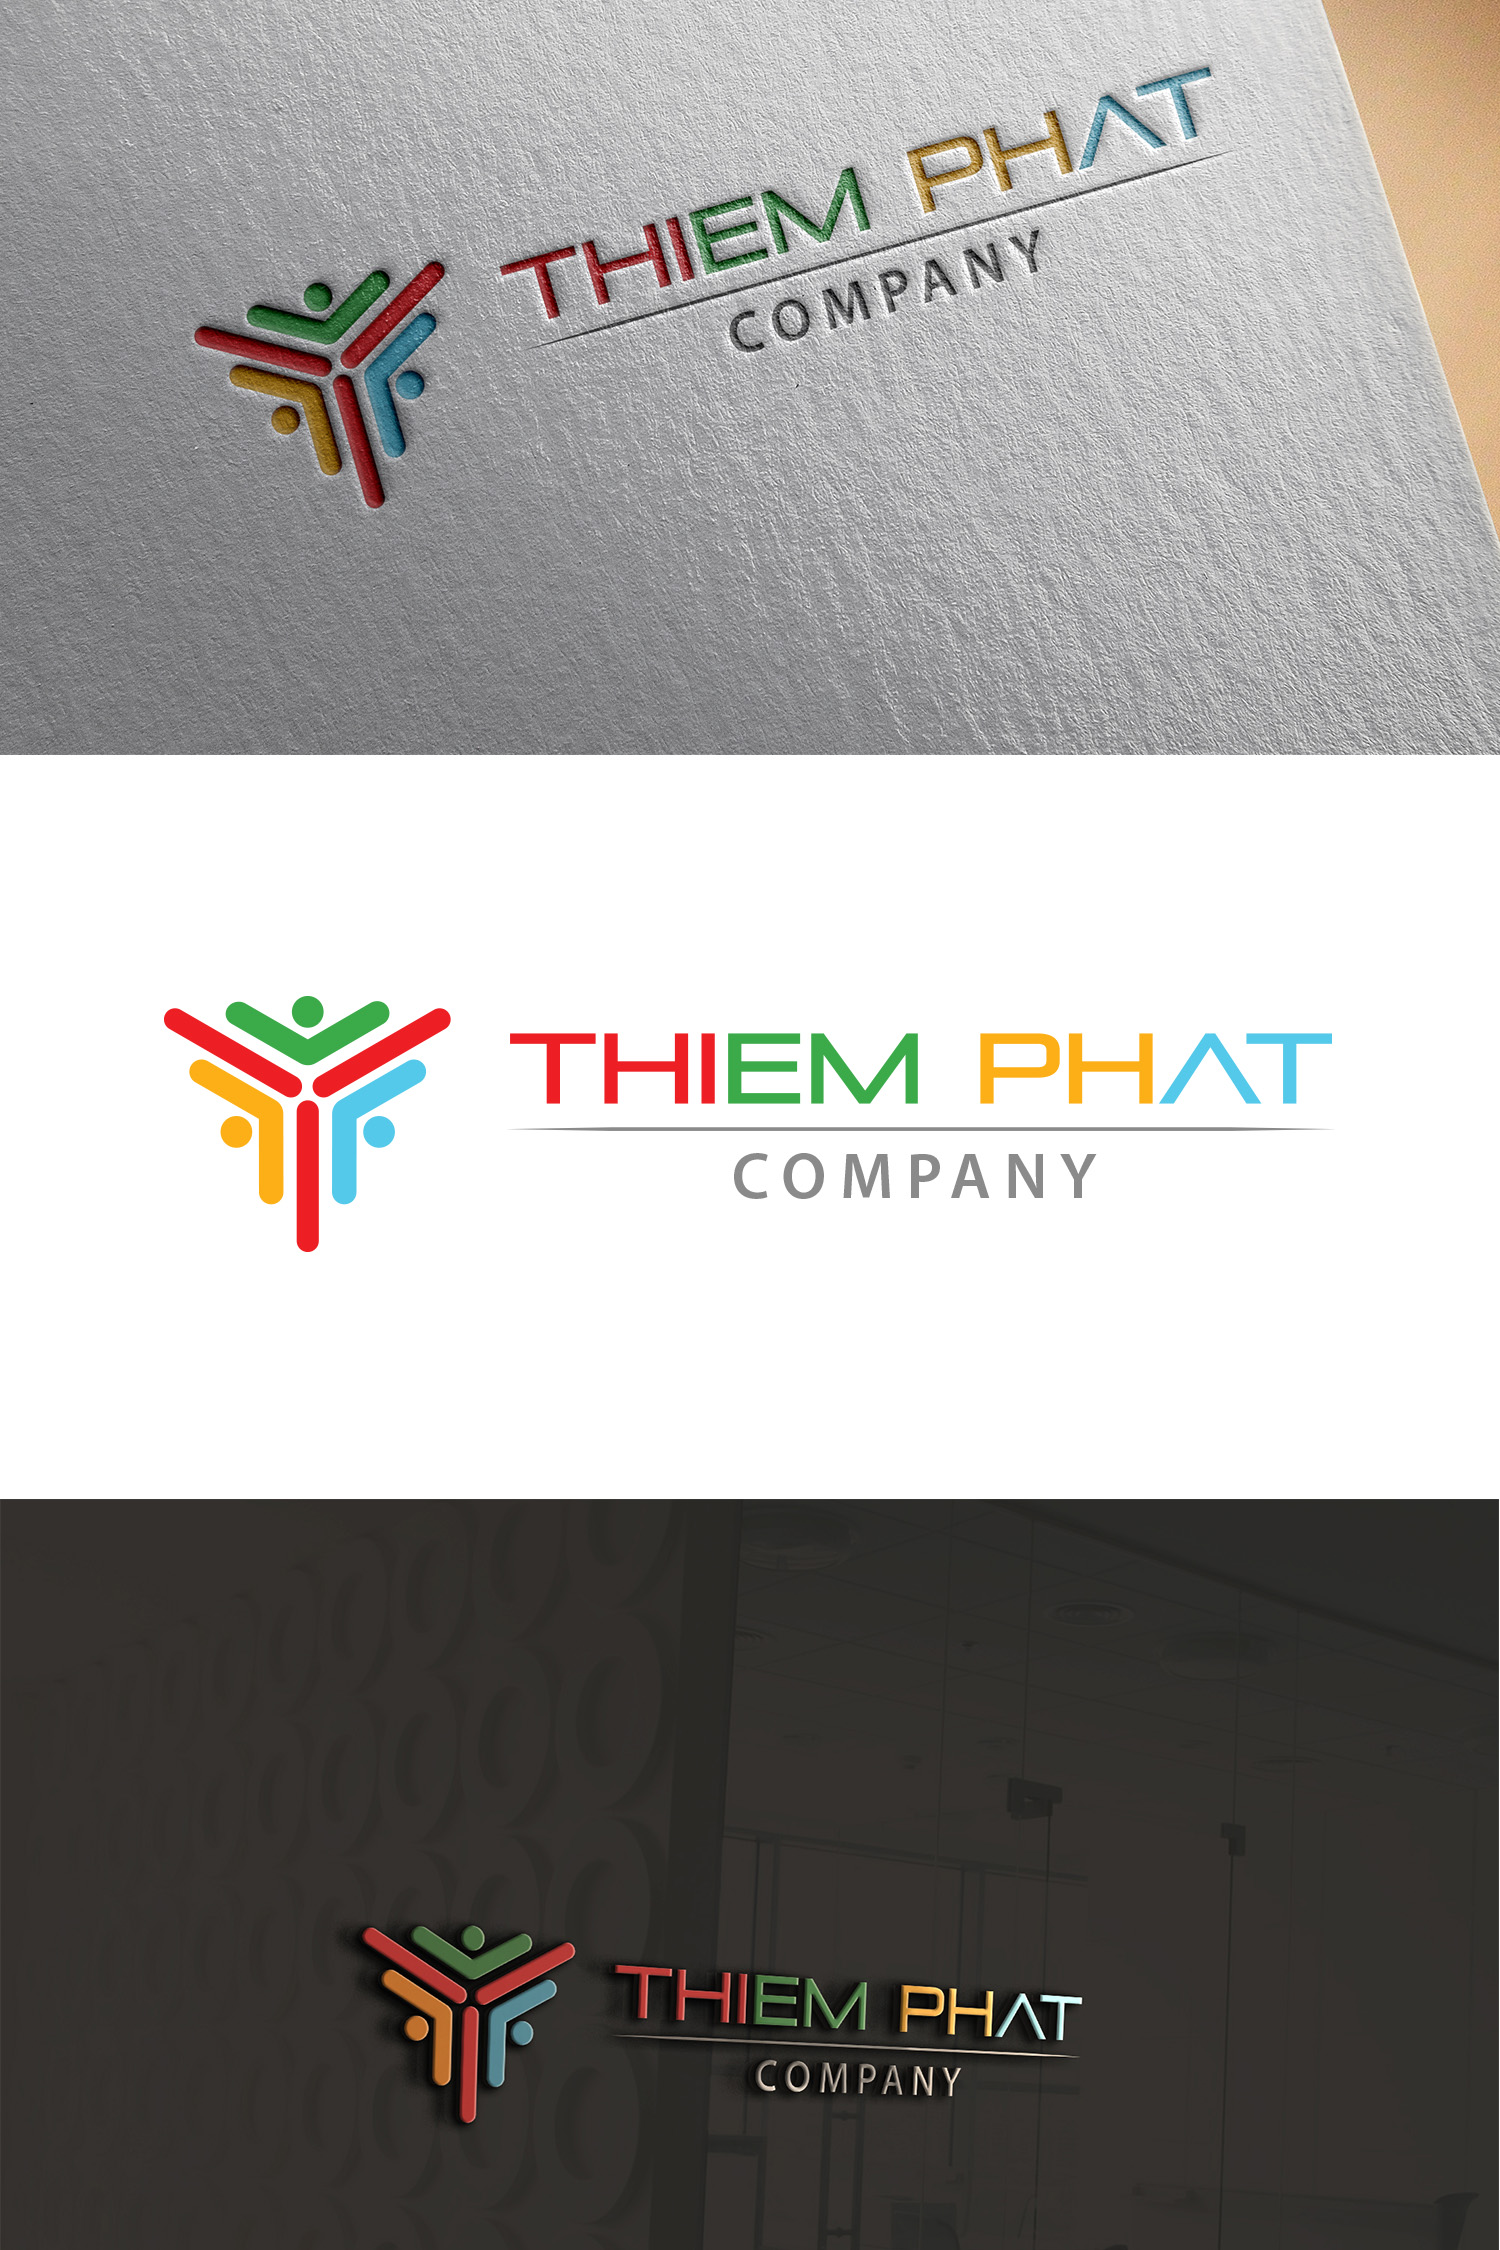 Logo Design by Umair ahmed Iqbal - Entry No. 193 in the Logo Design Contest New Logo Design for Thiem Phat company.